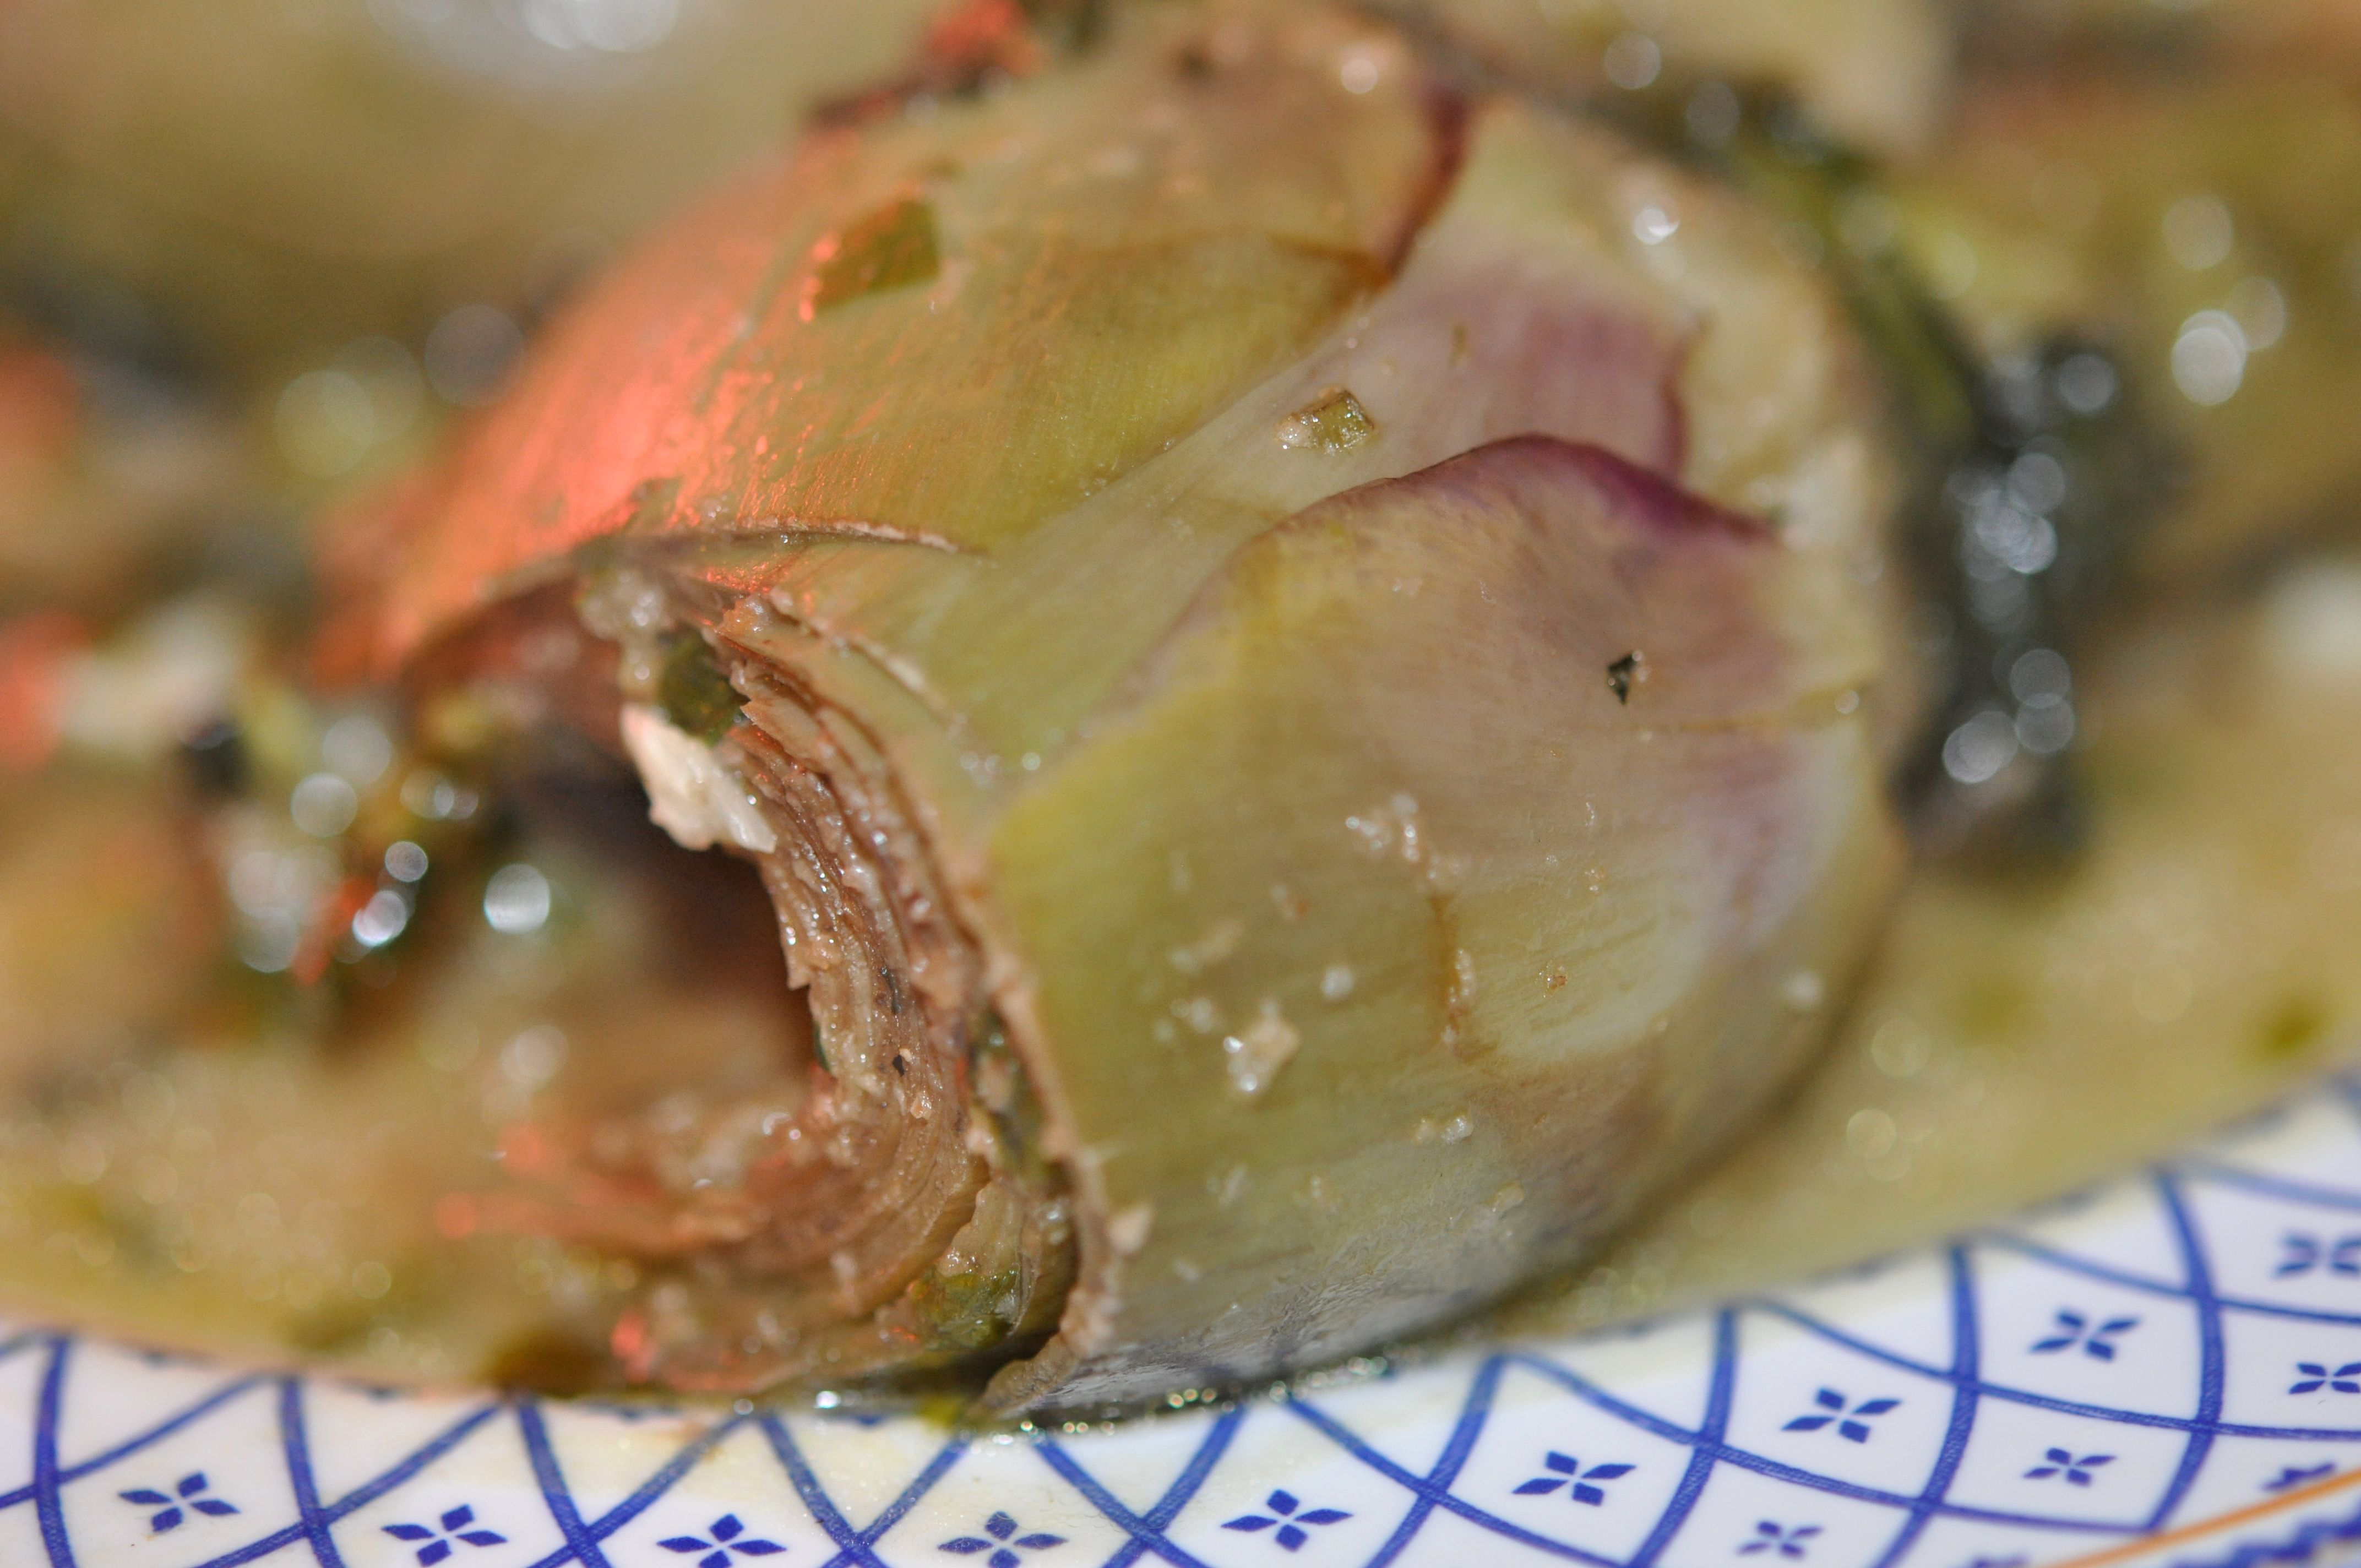 Carciofi alla romana, a food of Rome